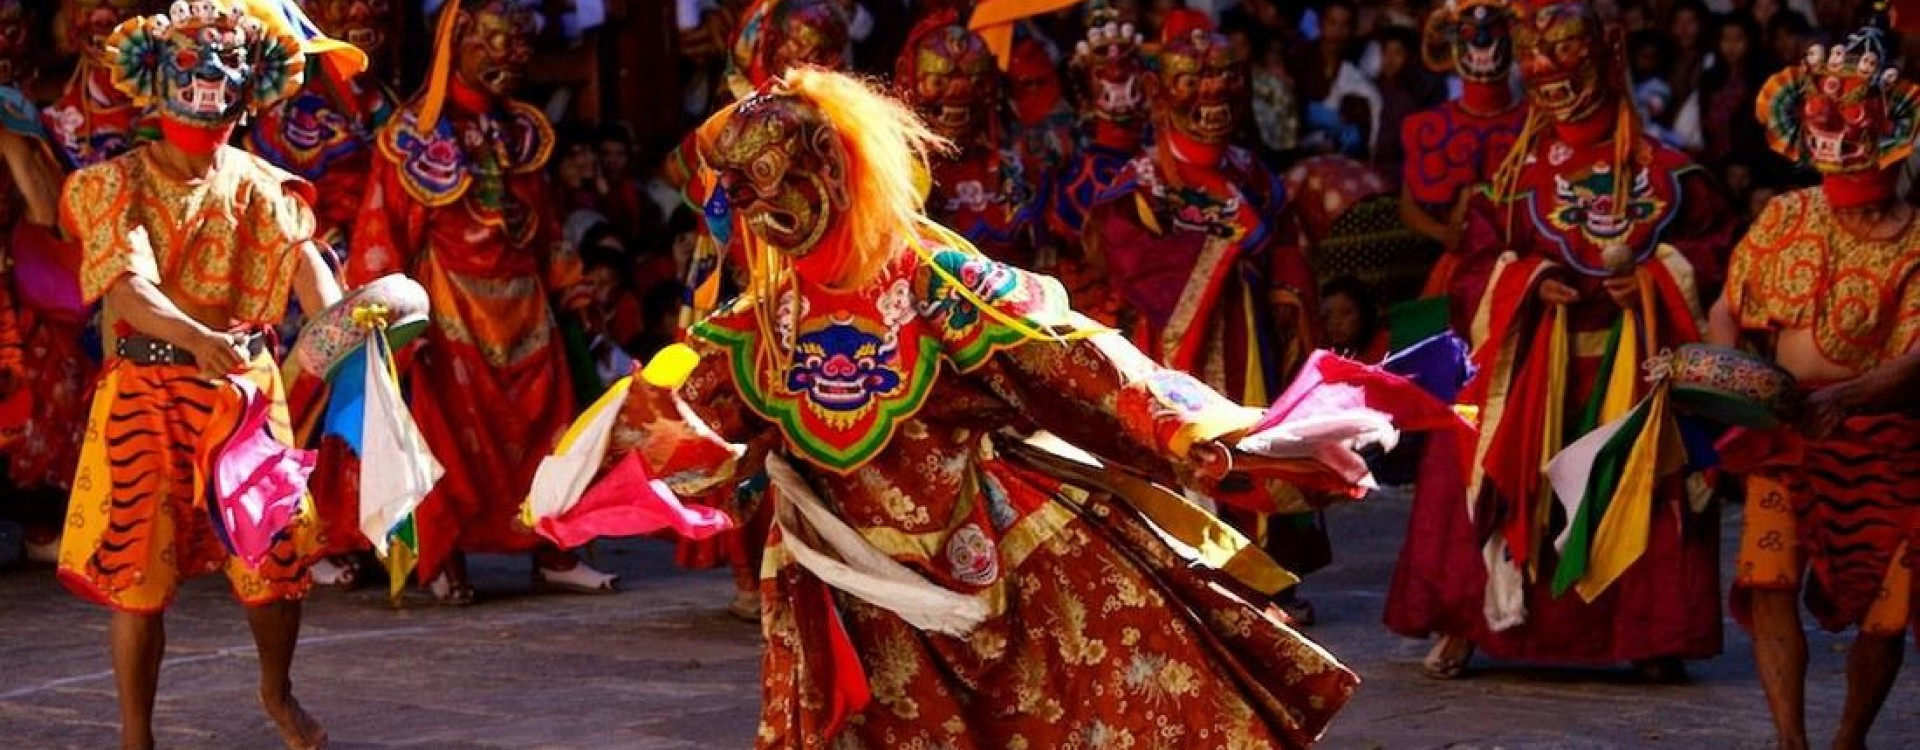 Destination Himalayan Kingdom of Bhutan | 07 Nts 08 Day